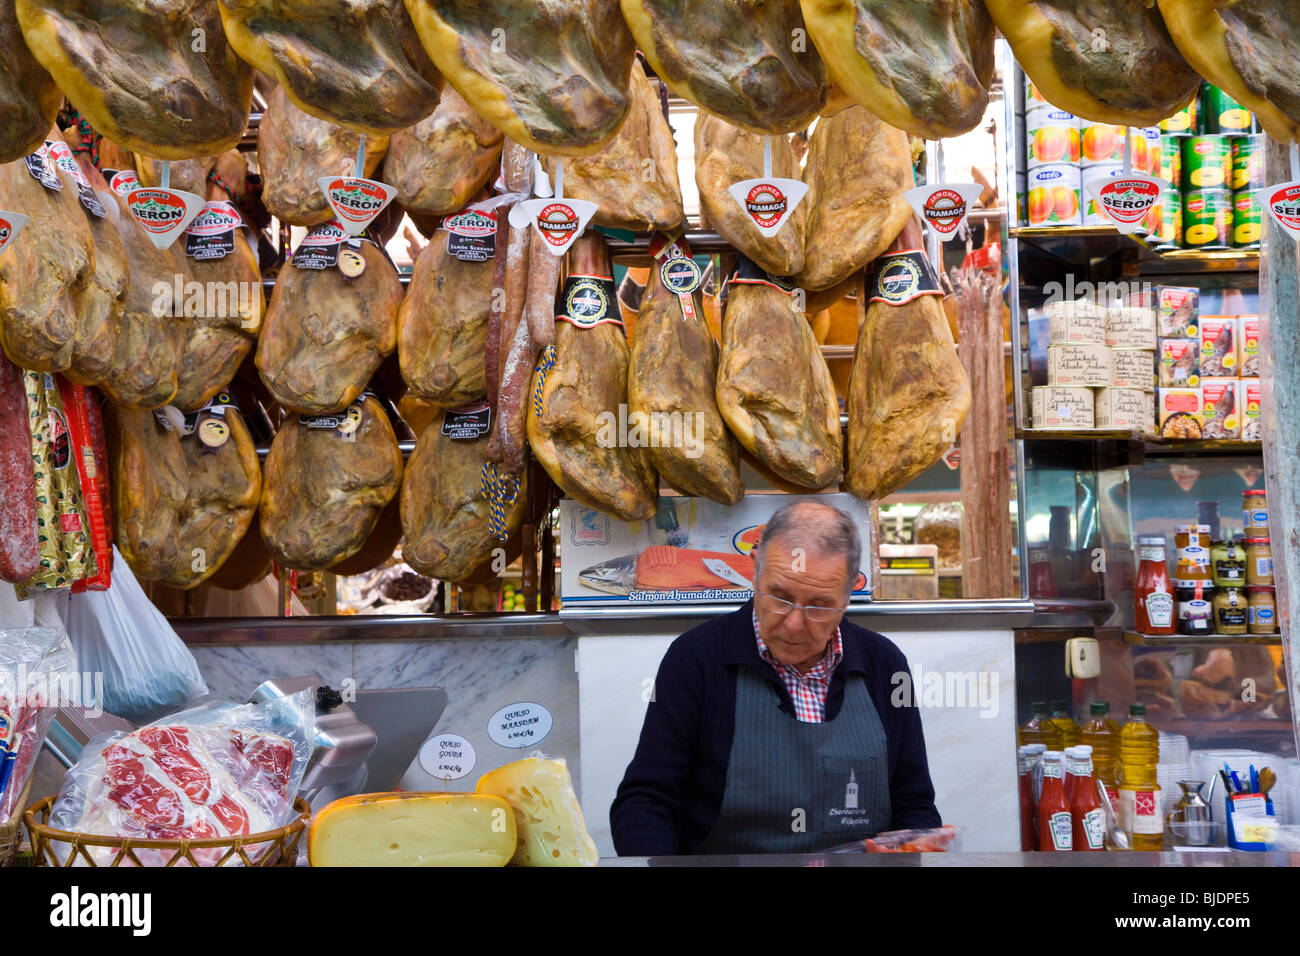 'Mercado Central (central market) in Valencia, Spain, one of the largest indoor markets in Europe', stall - Stock Image